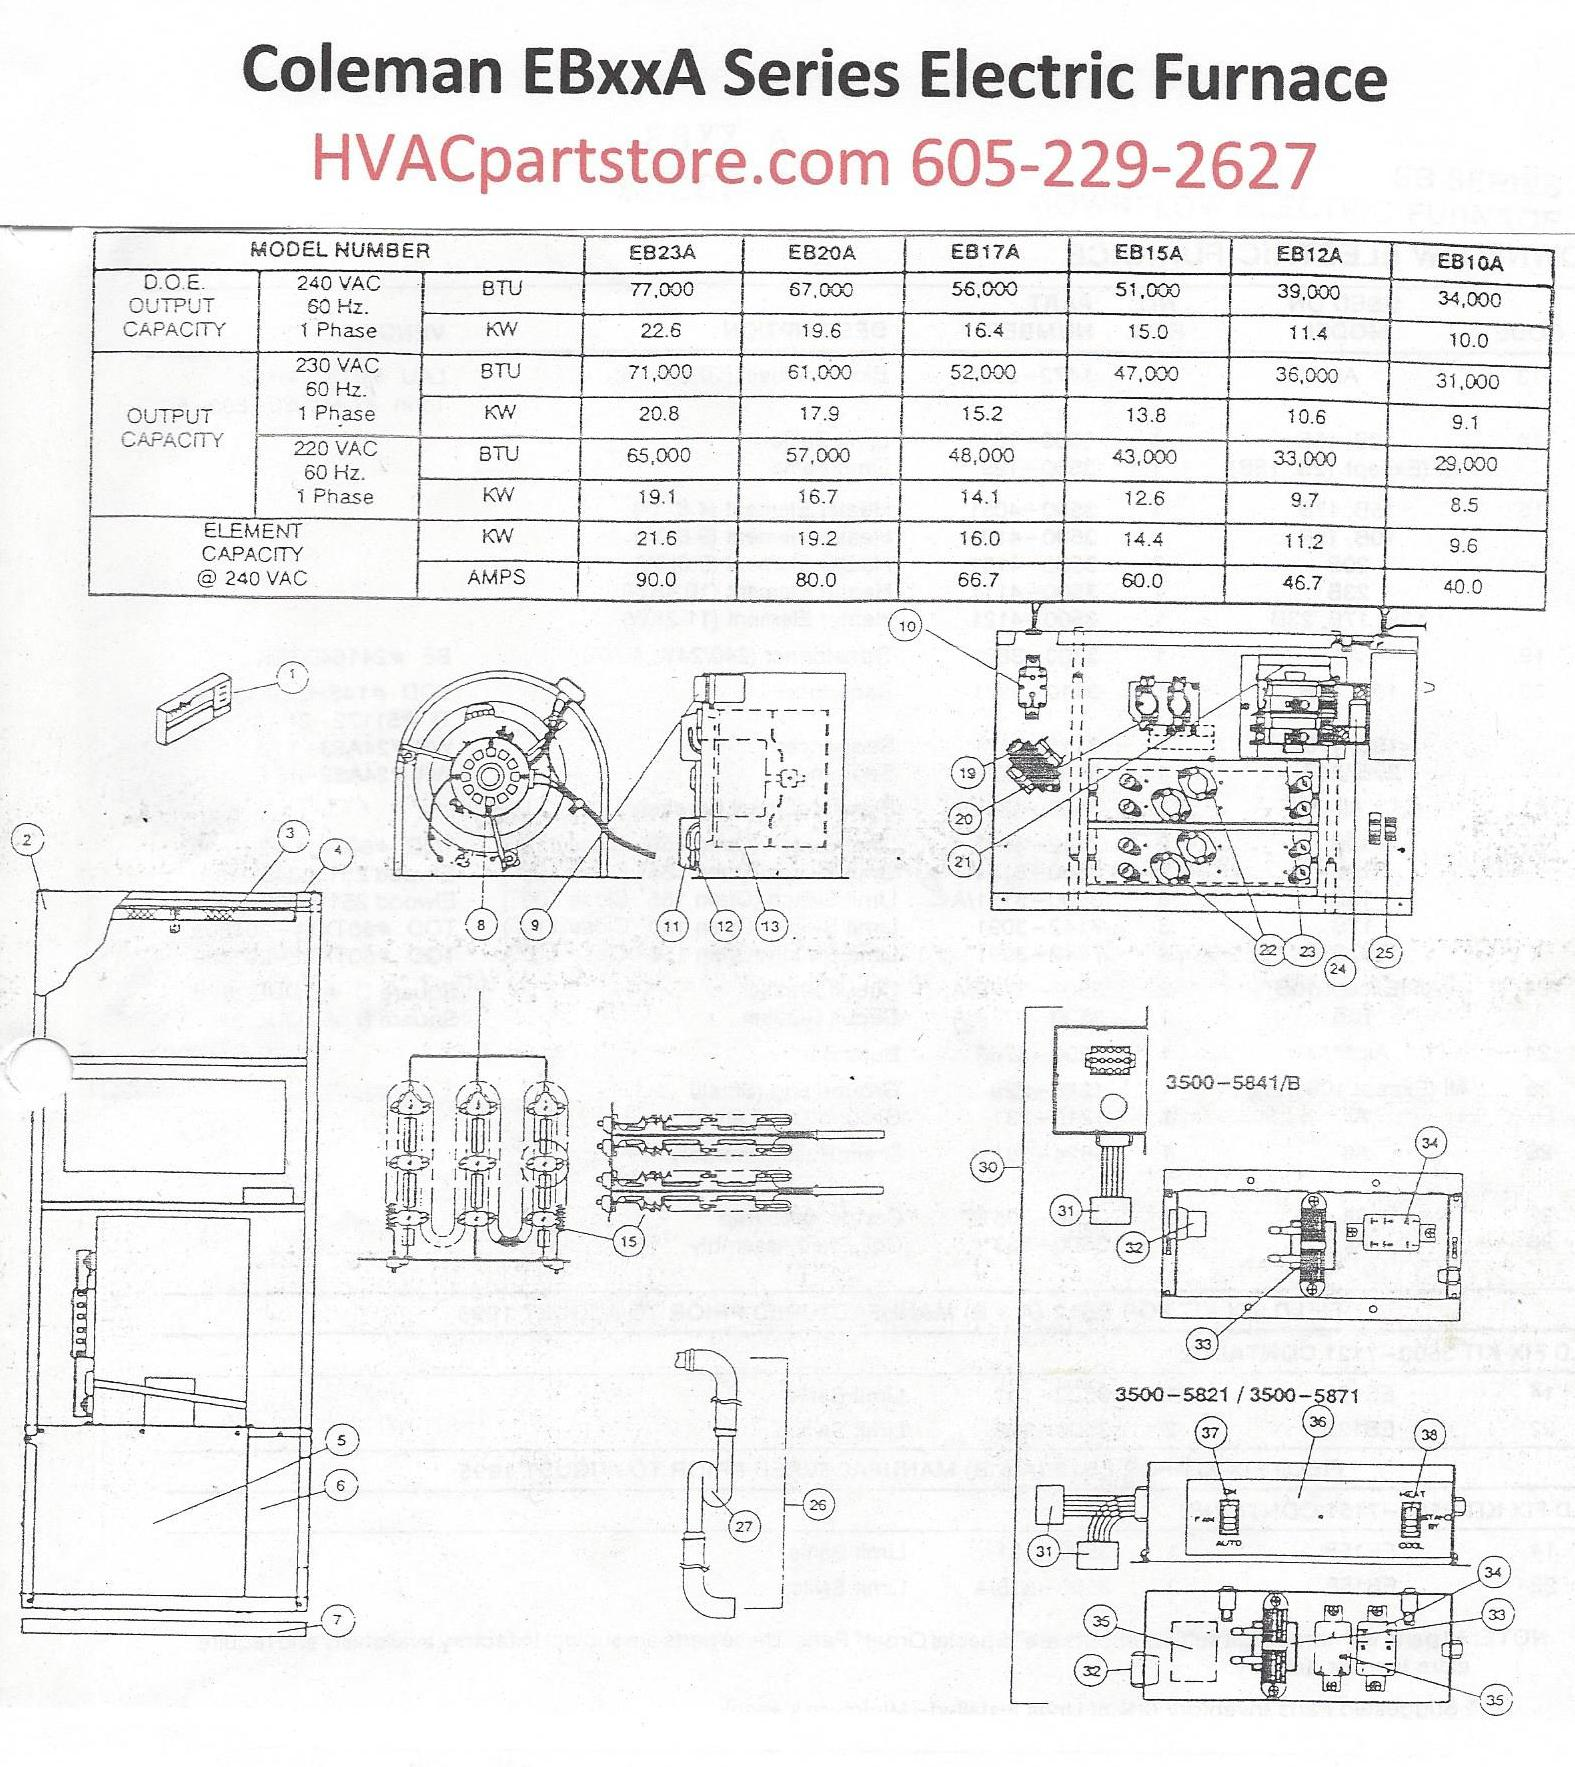 intertherm wiring diagram intertherm image wiring intertherm furnace wire diagram images on intertherm wiring diagram